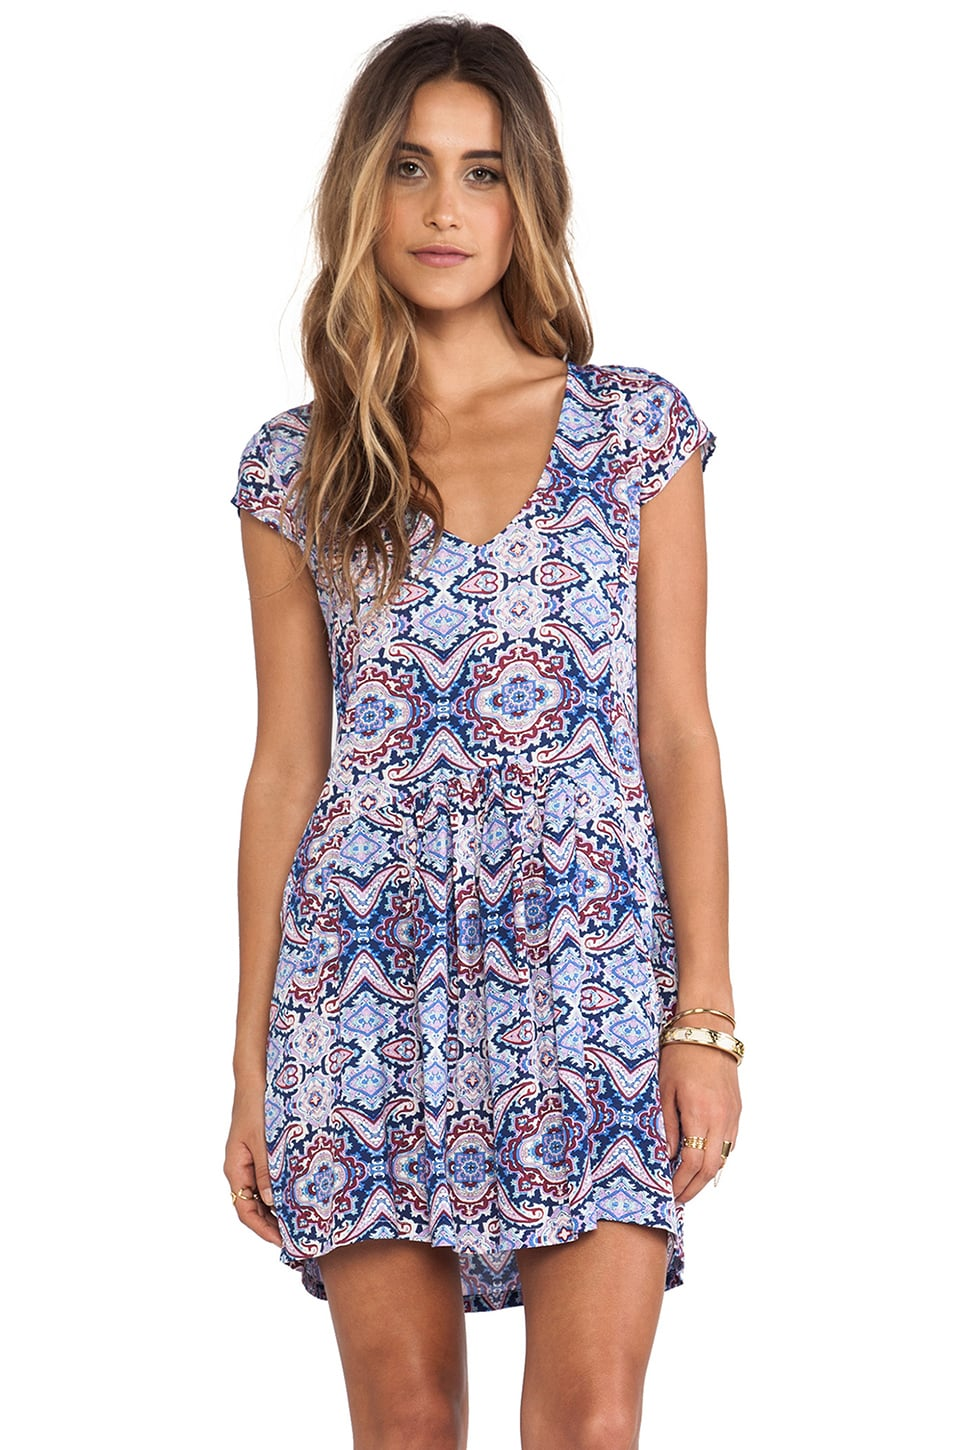 Tigerlily Vienne Dress in Paisley